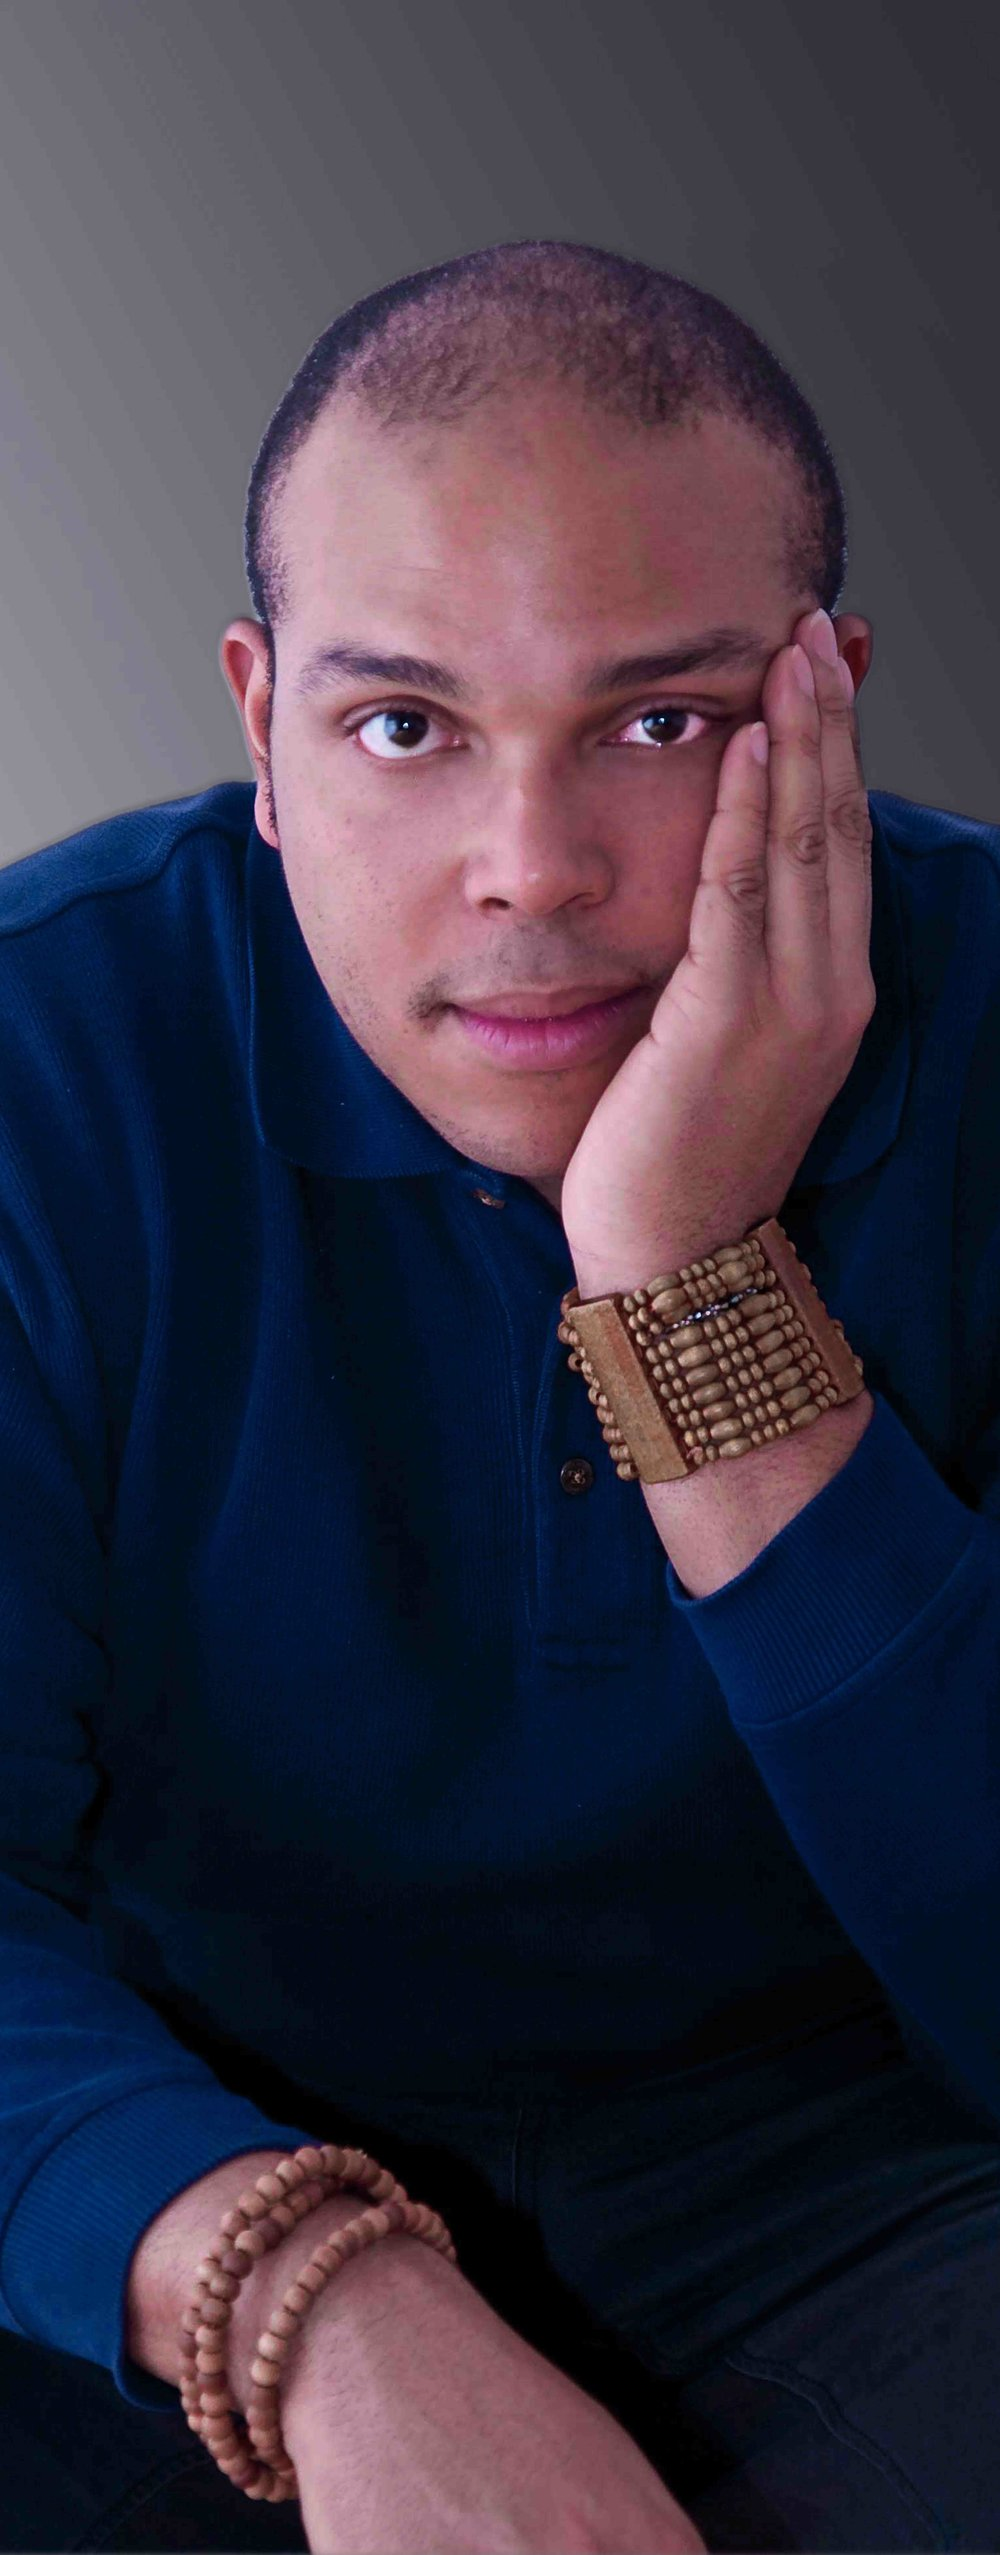 - Aurin Squire is an award-winning playwright, journalist, and multimedia artist. Squire is honored to be the inaugural recipient of the Emerald Prize at Seattle Public Theater. Last year his dramas